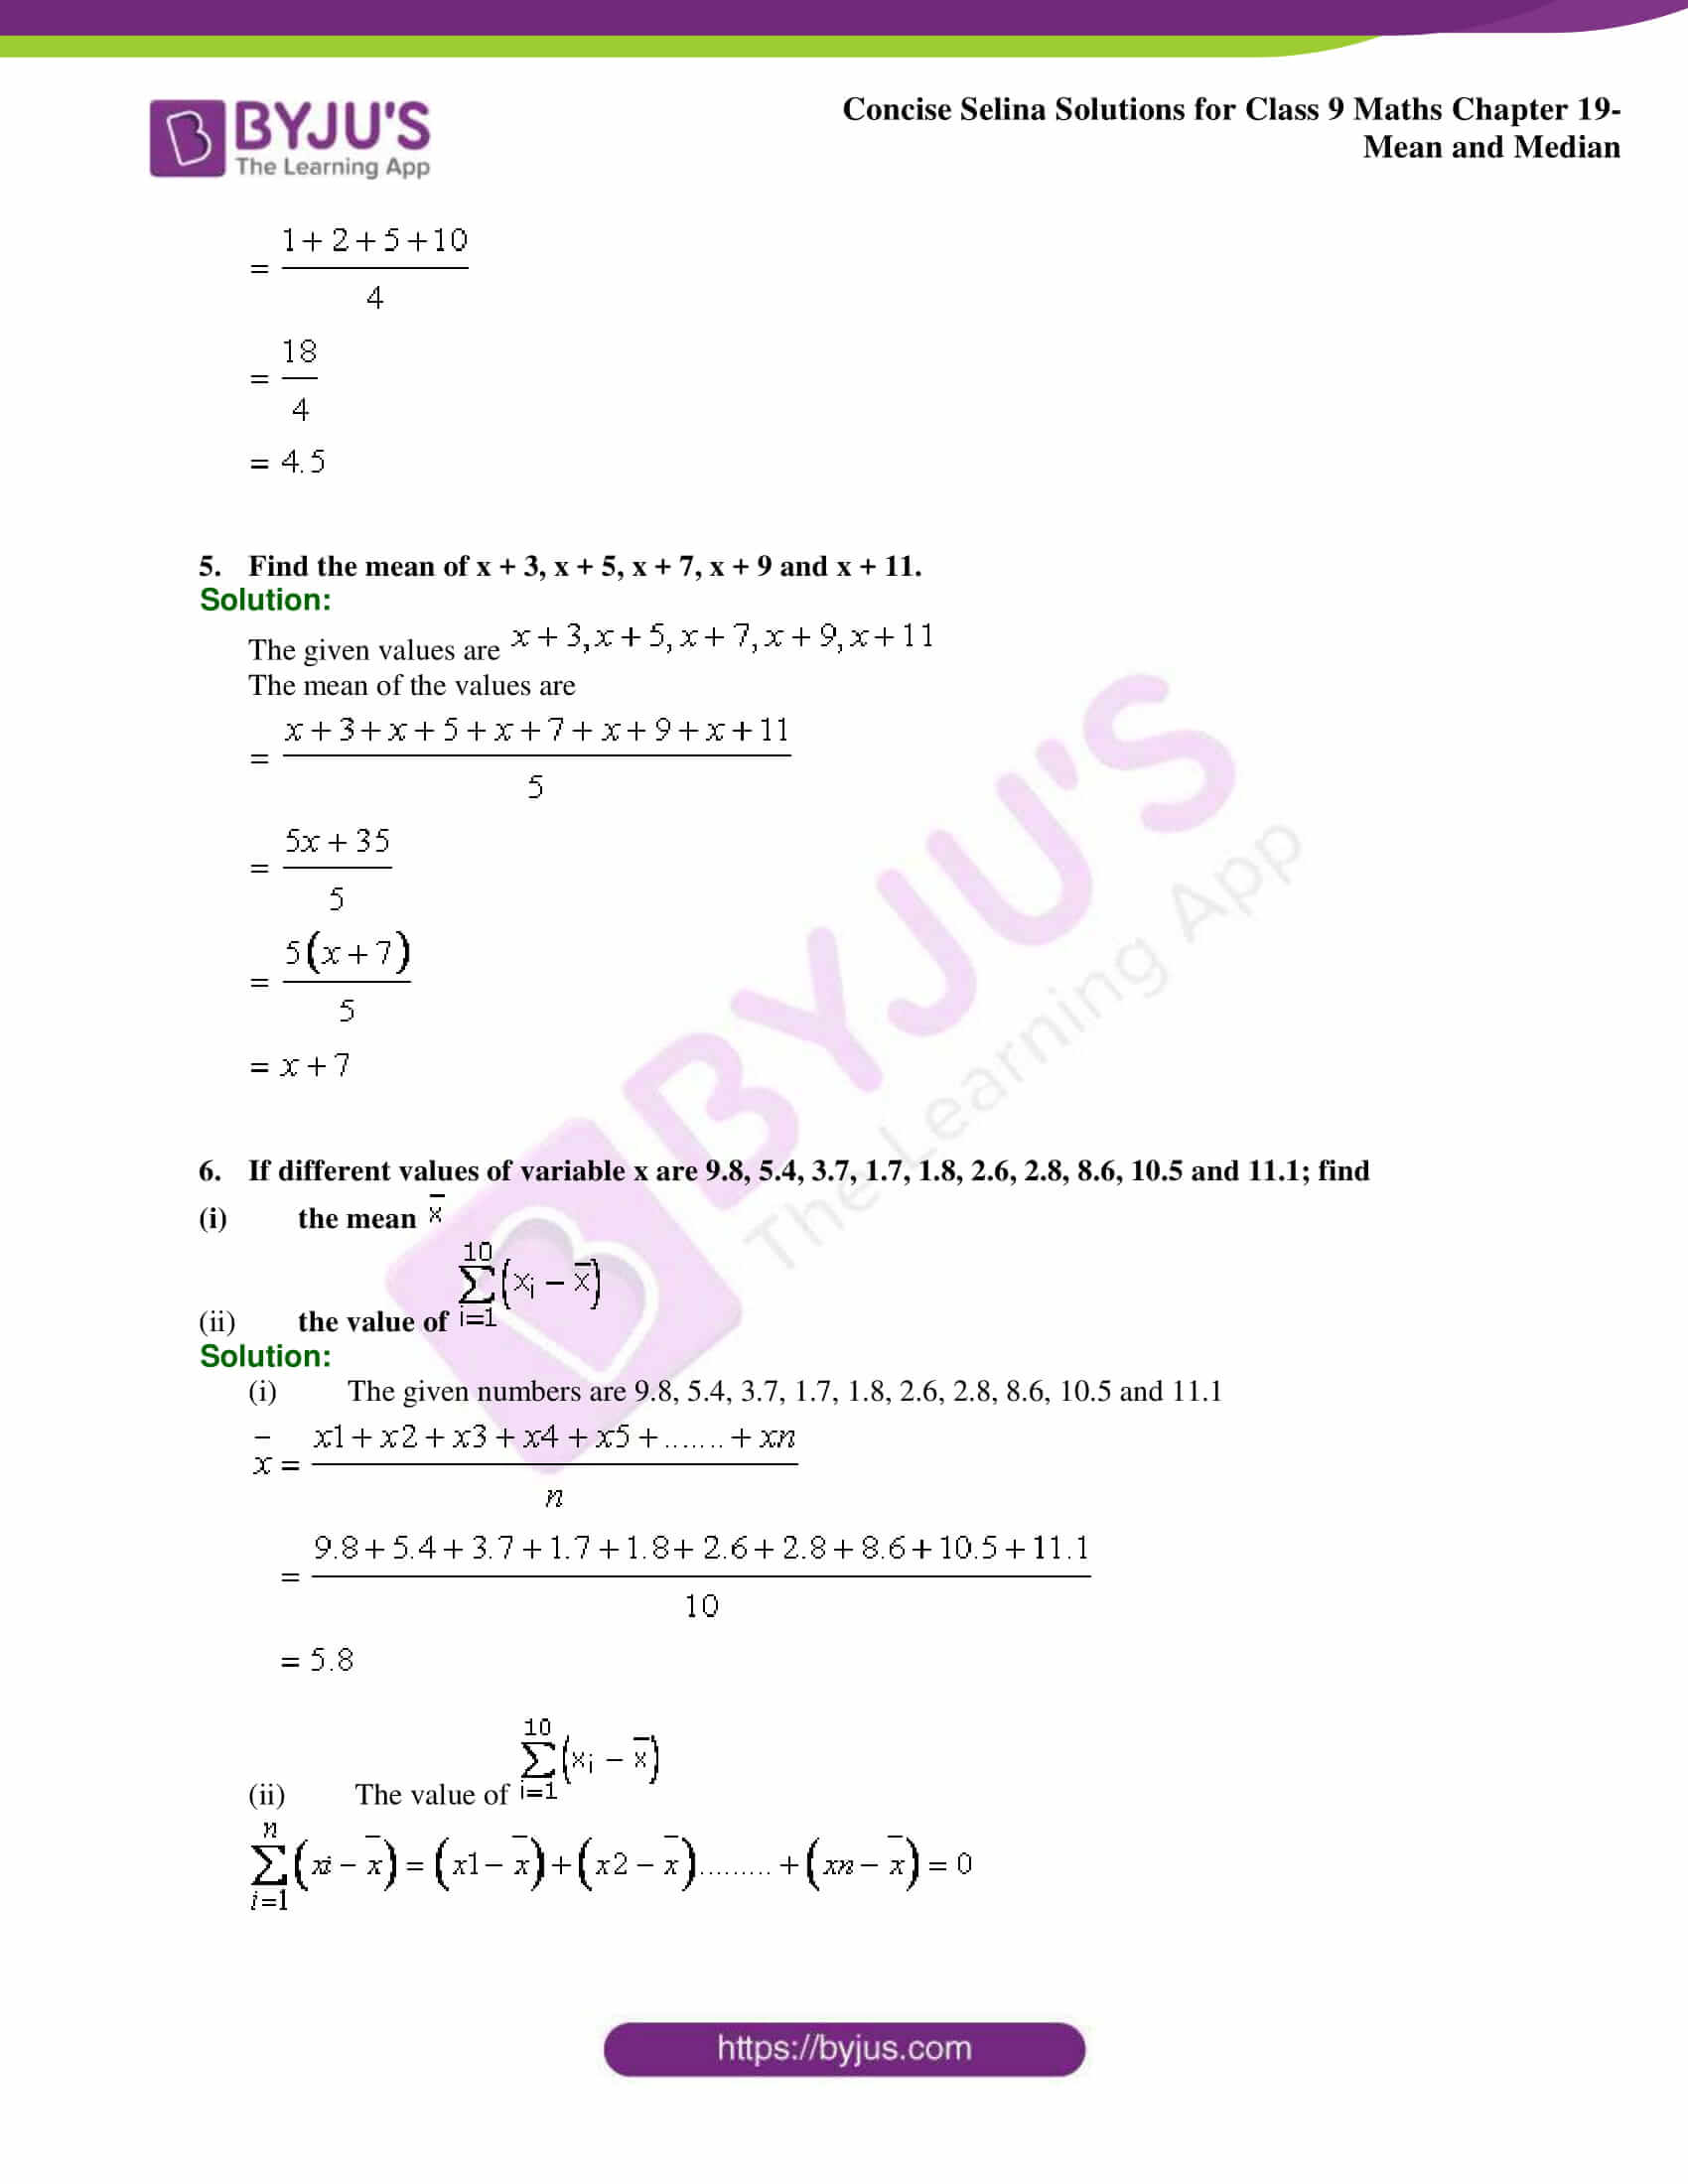 Concise Selina Solutions Class 9 Maths Chapter 19 Mean and Median part 02